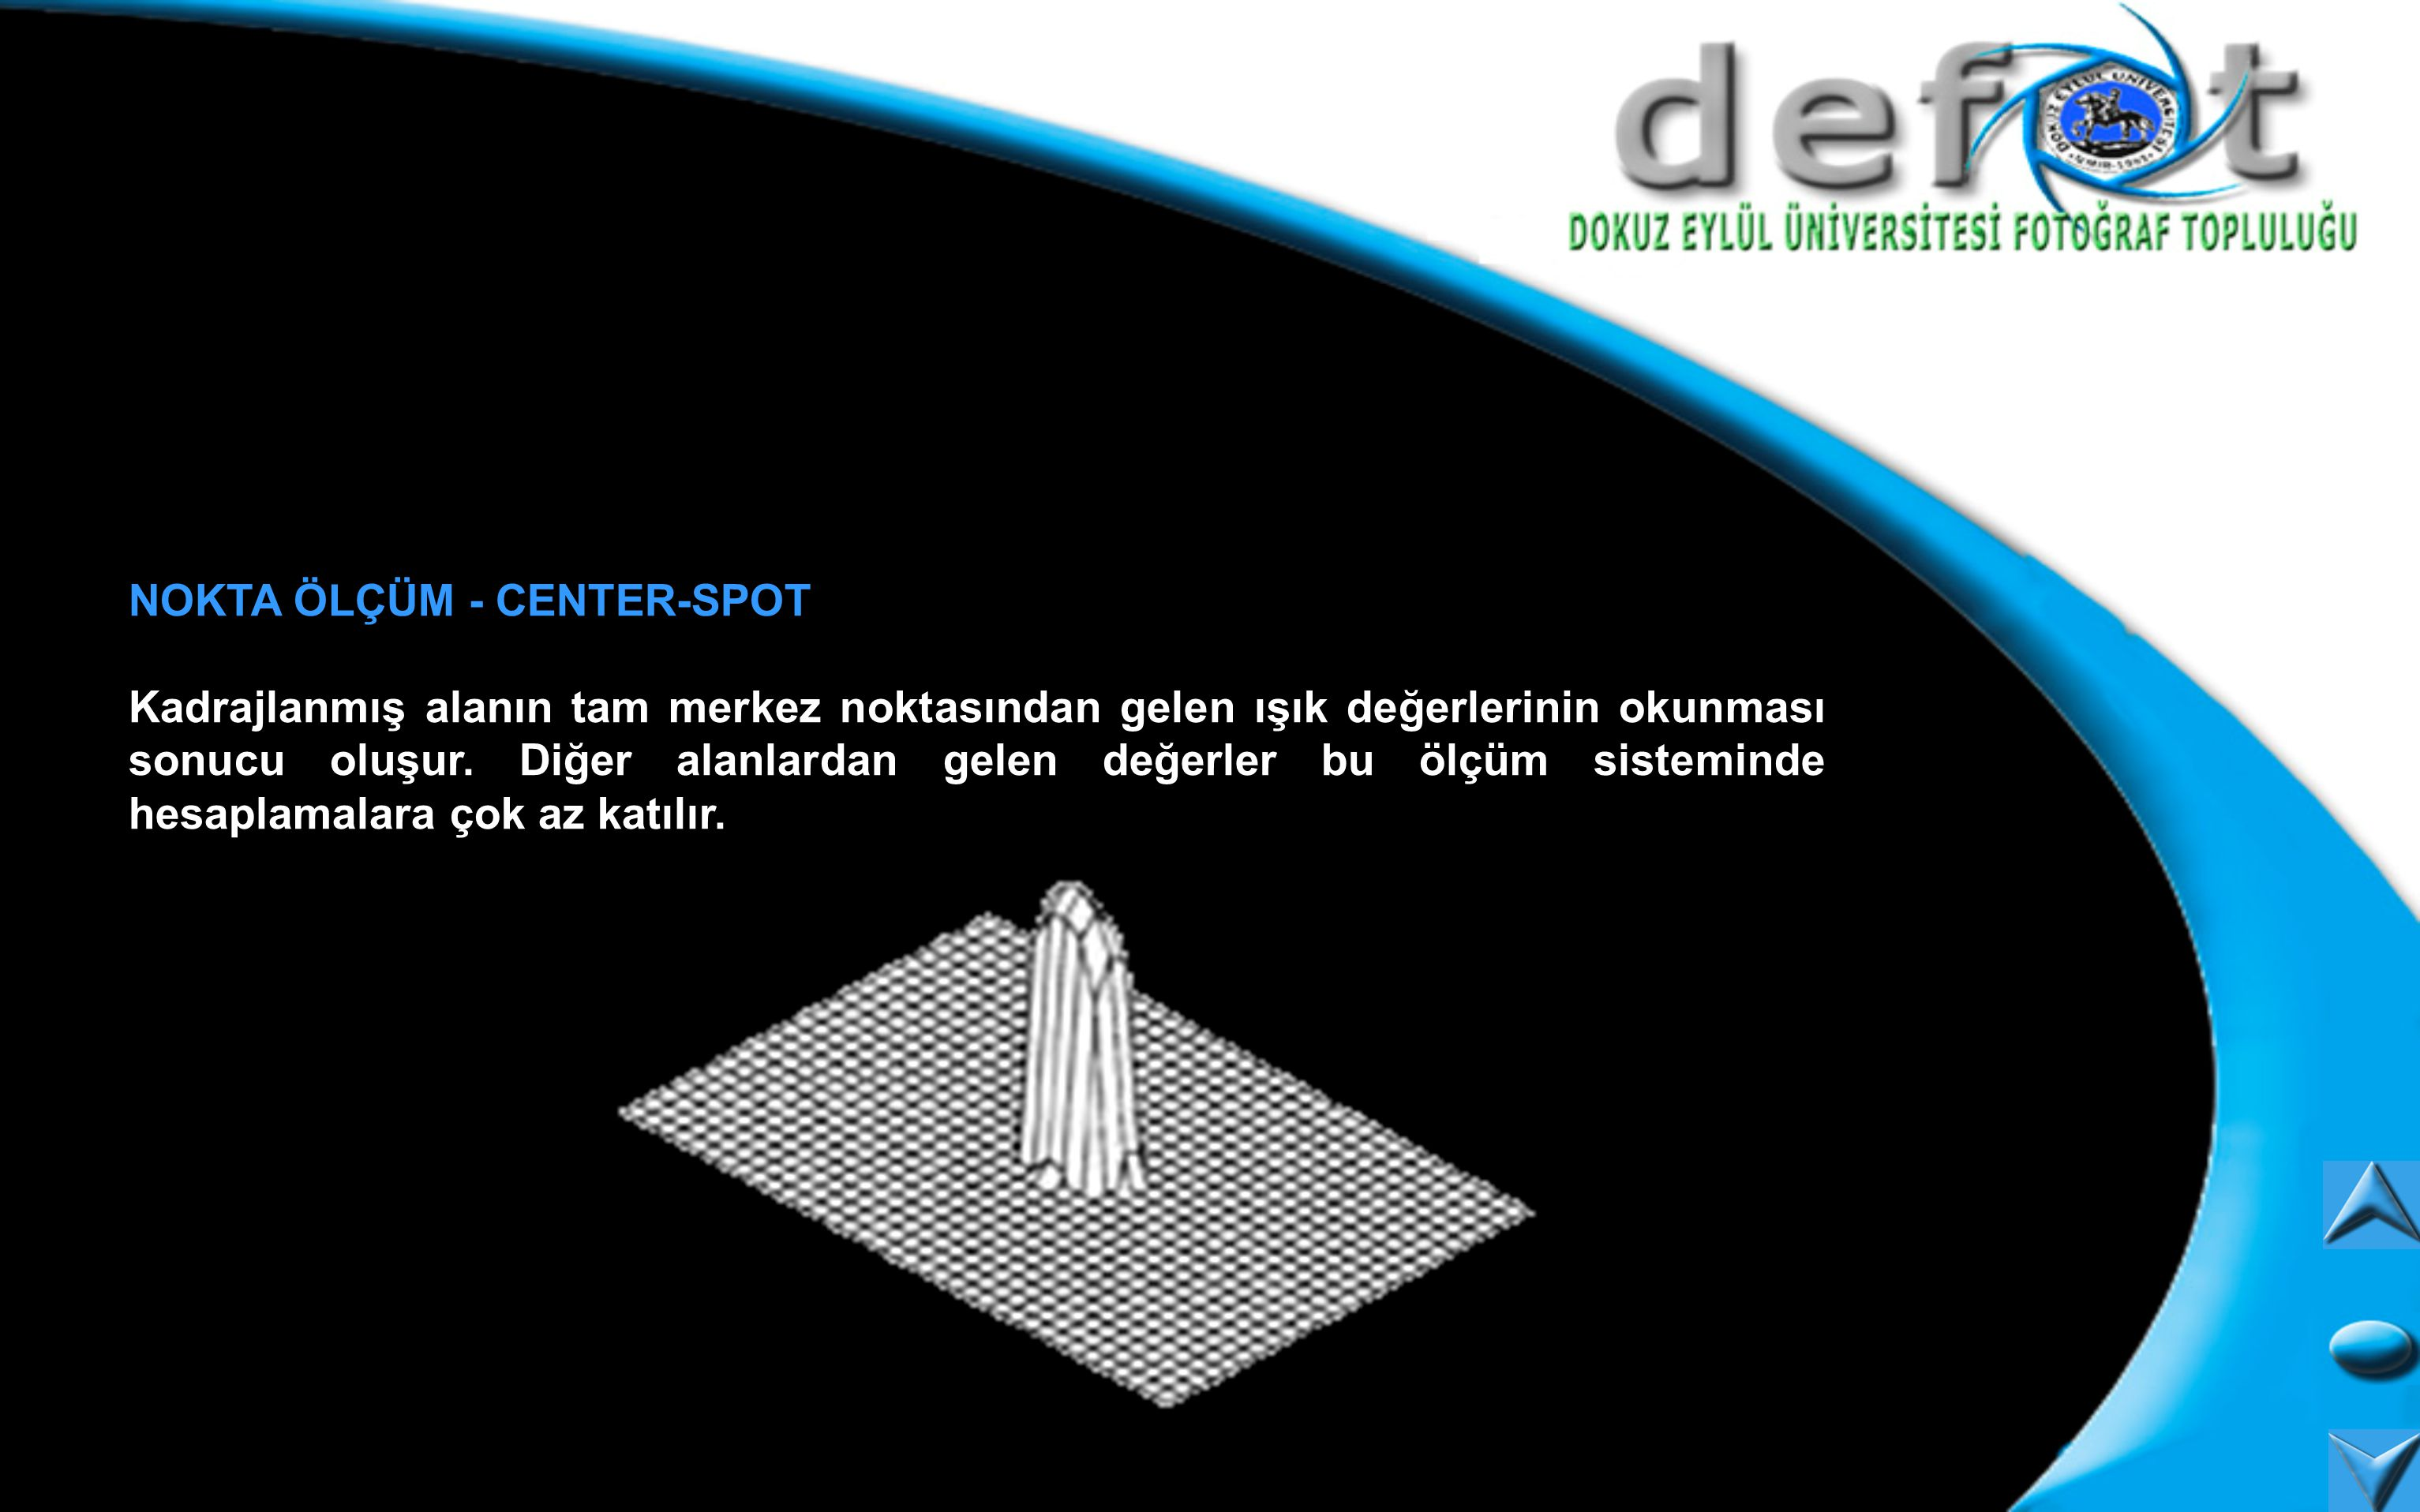 NOKTA ÖLÇÜM - CENTER-SPOT